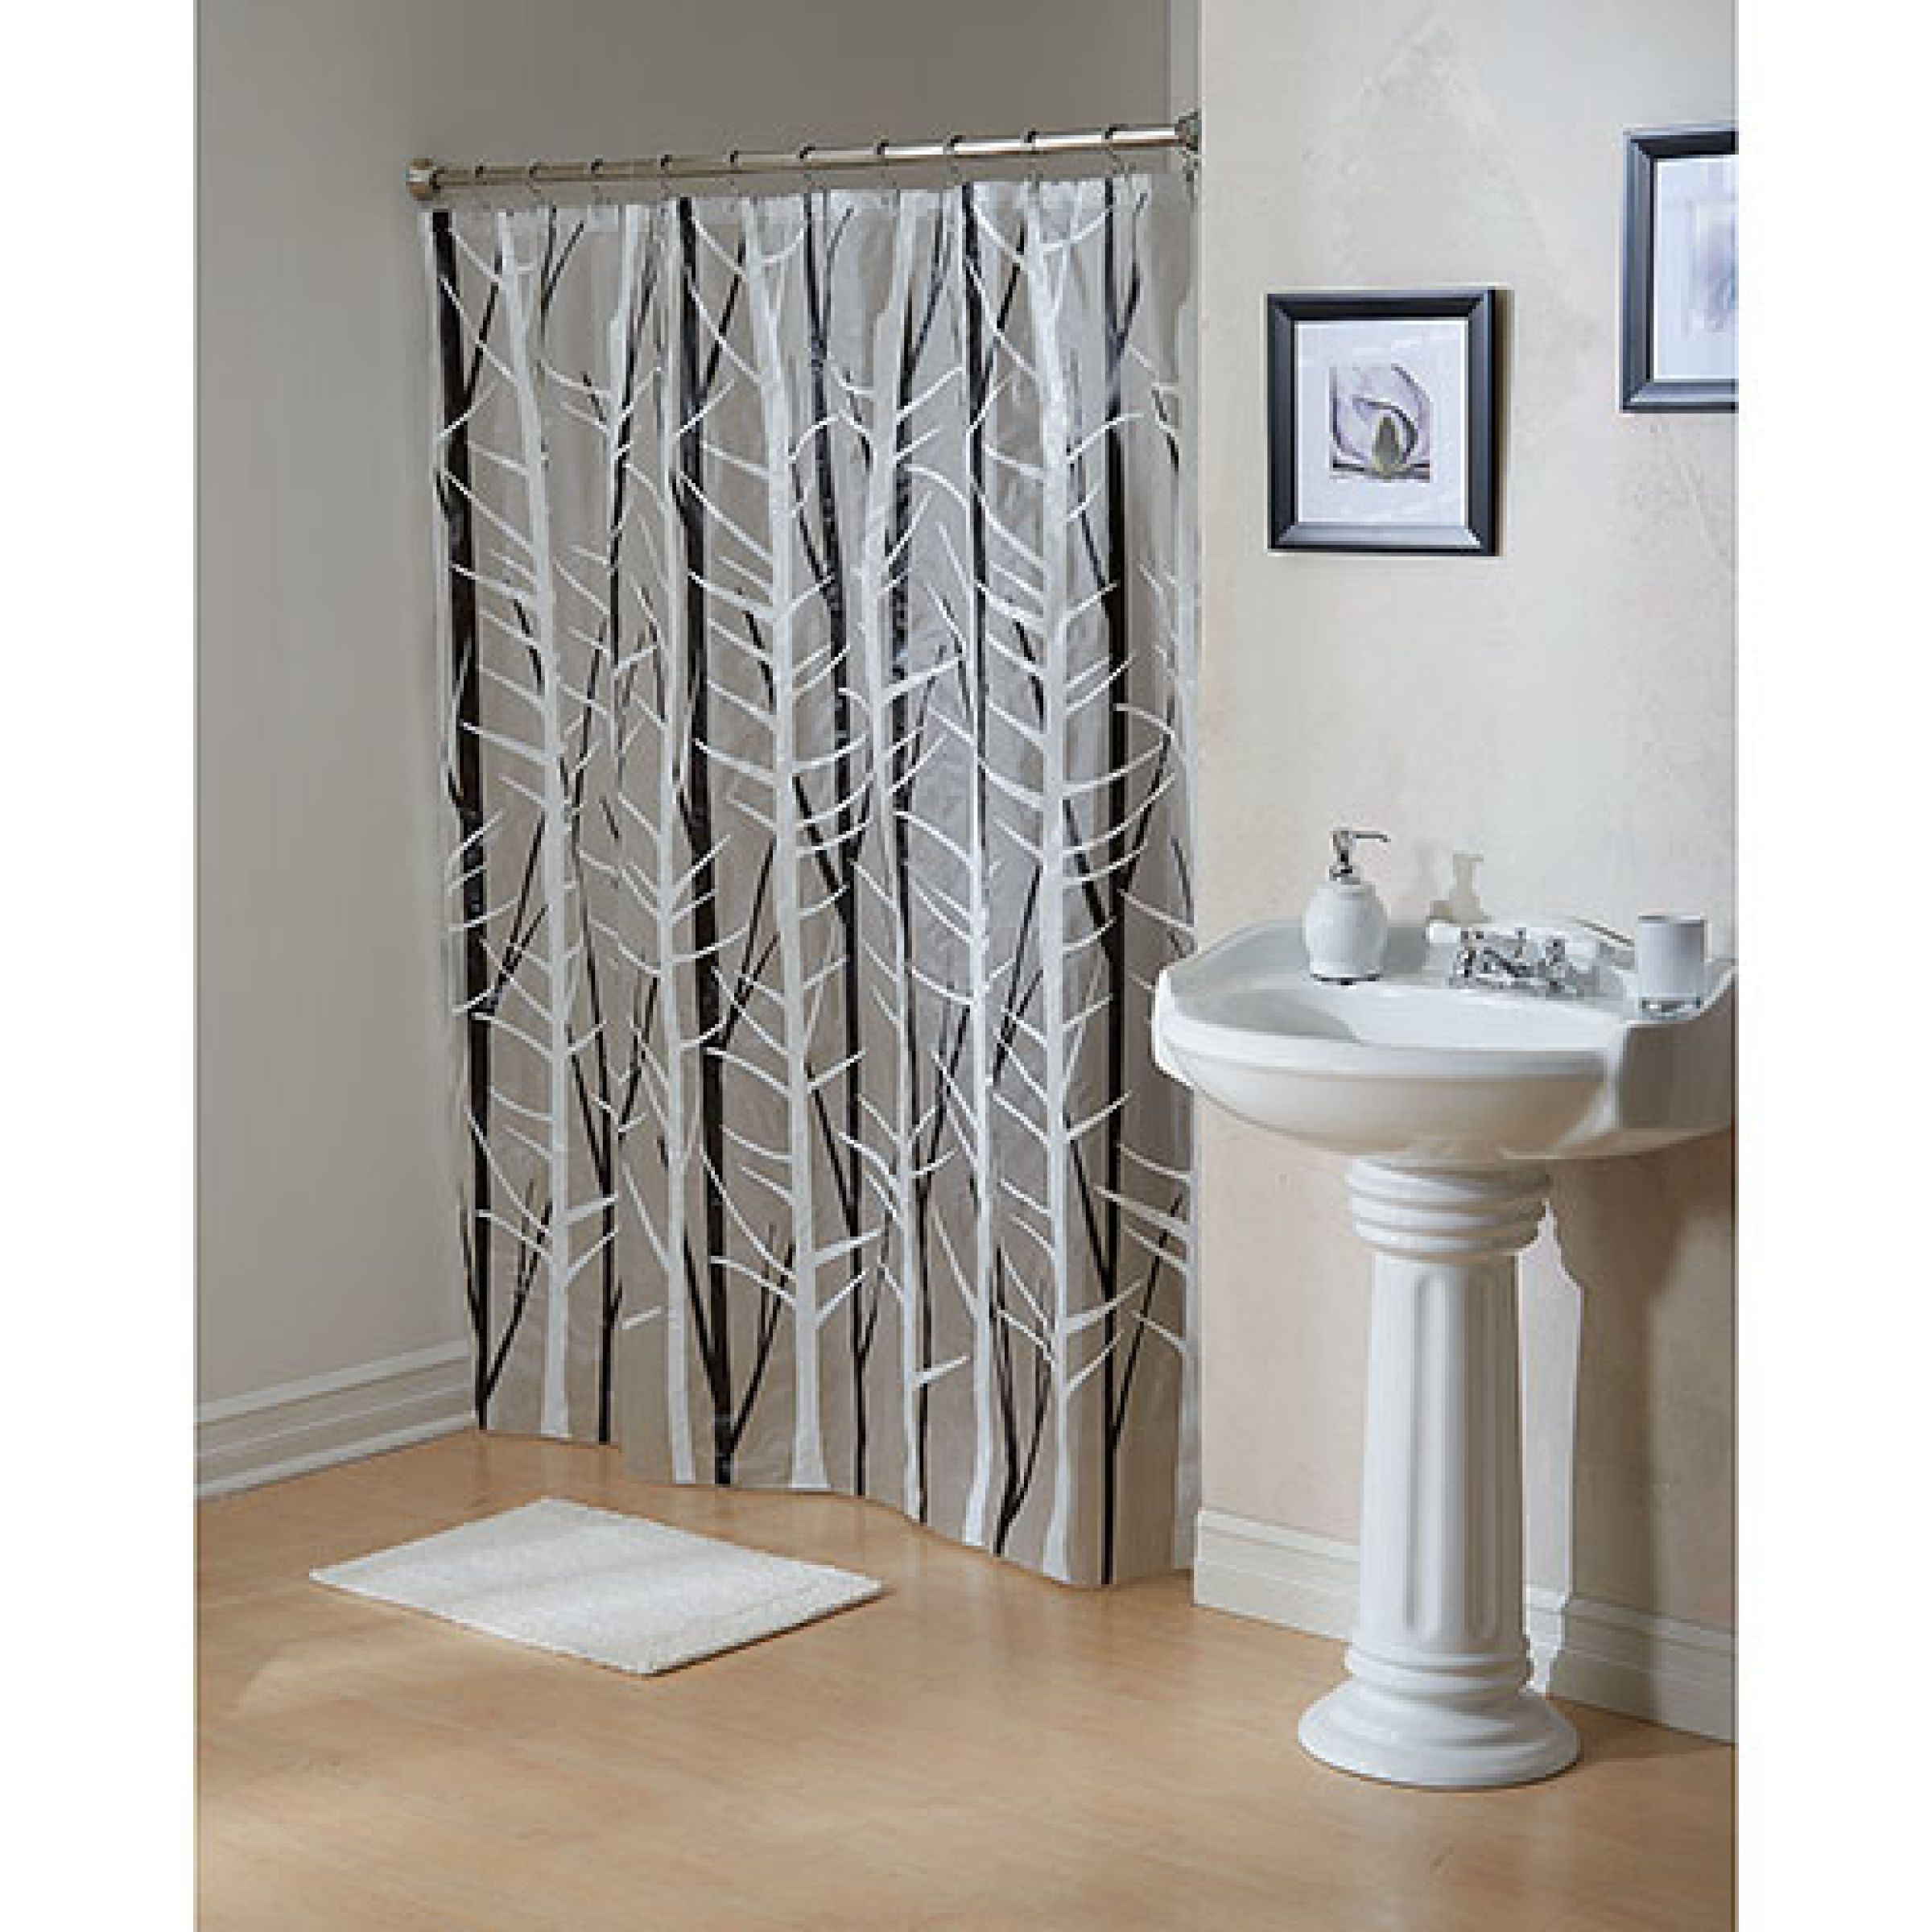 Boscov's Shower Curtains Maytex Woodland Peva Shower Curtain Boscov S Home By Boscov S